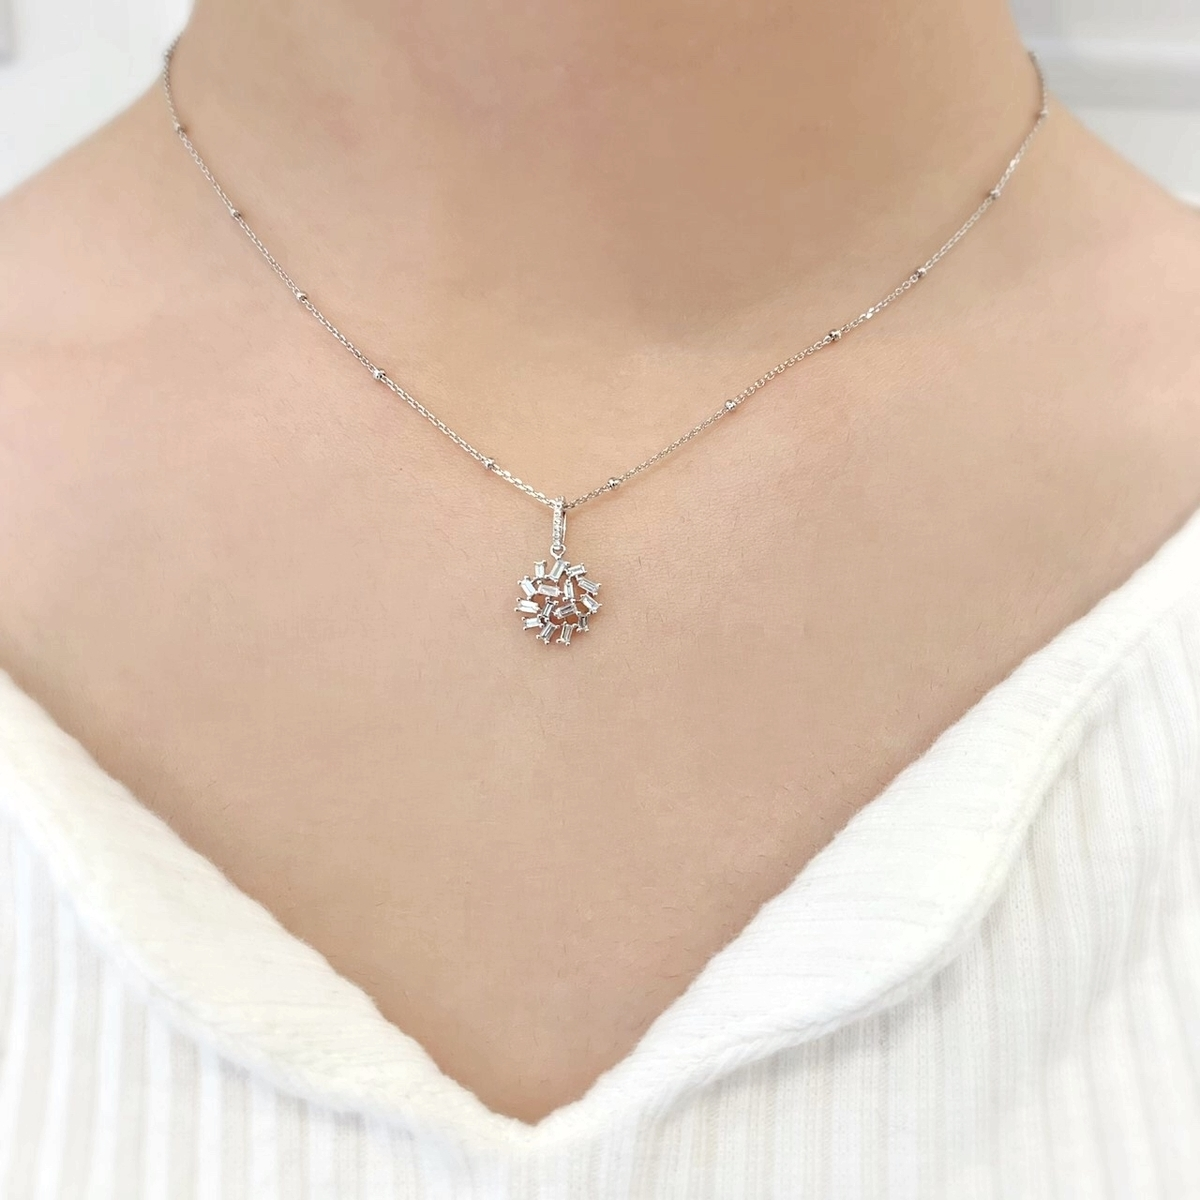 f:id:snow-jewelry-terrace:20190617185422j:plain